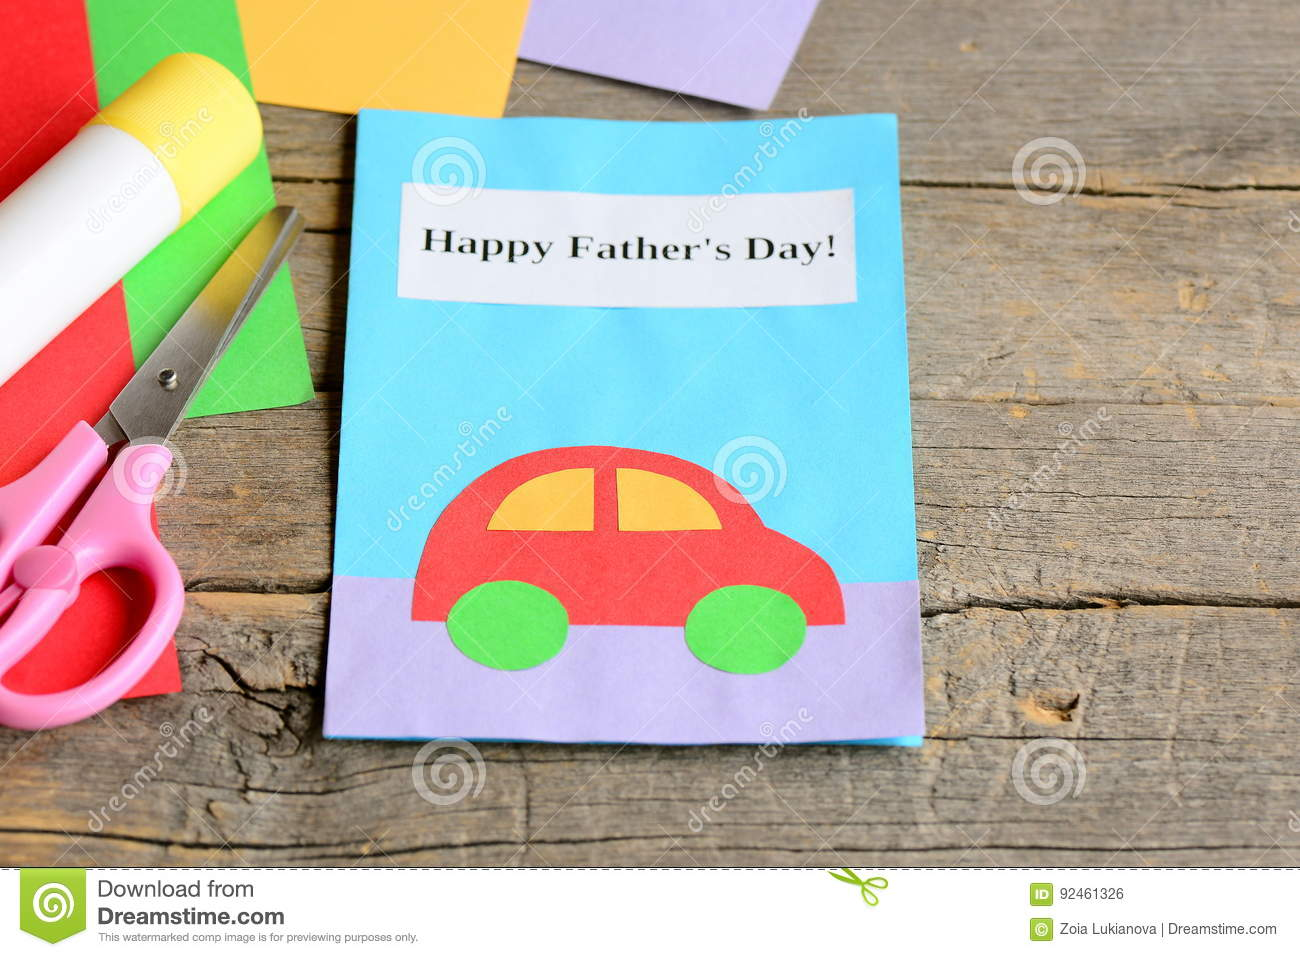 happy father`s day card. colored paper sheets, scissors, glue on